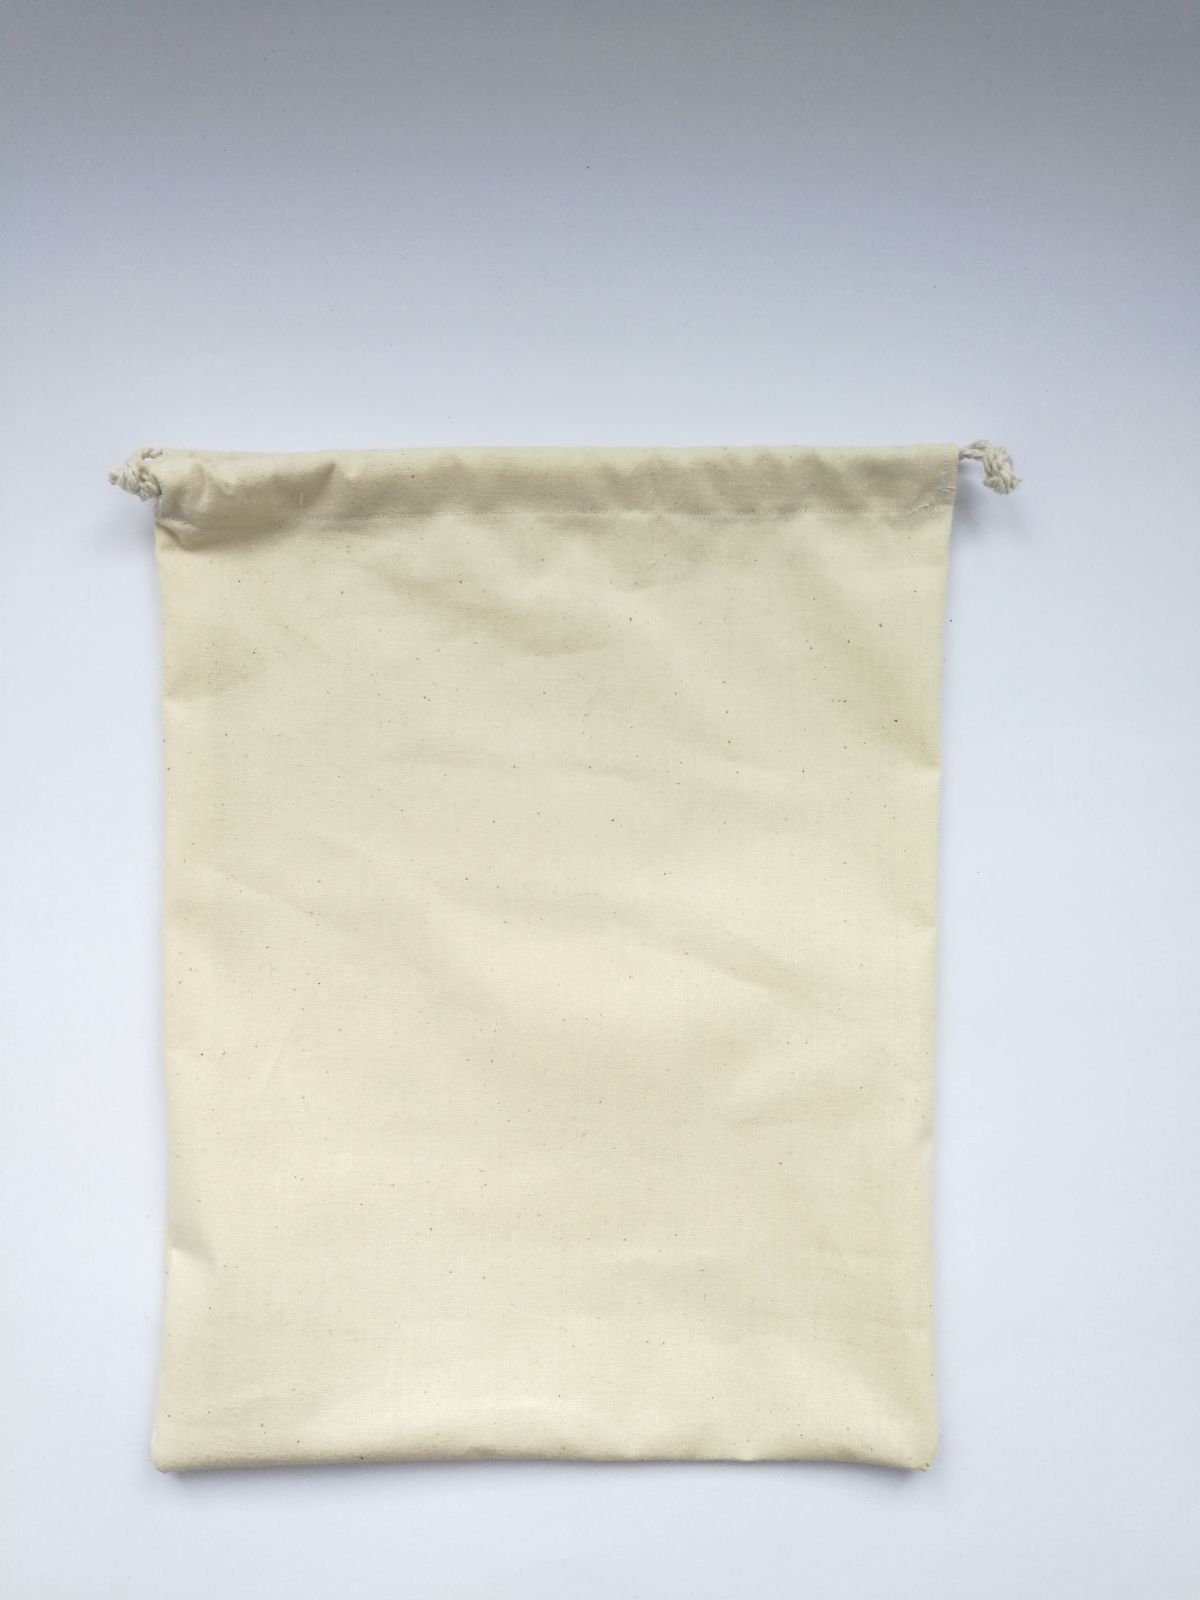 Recycled undyed natural cotton drawstring produce bag